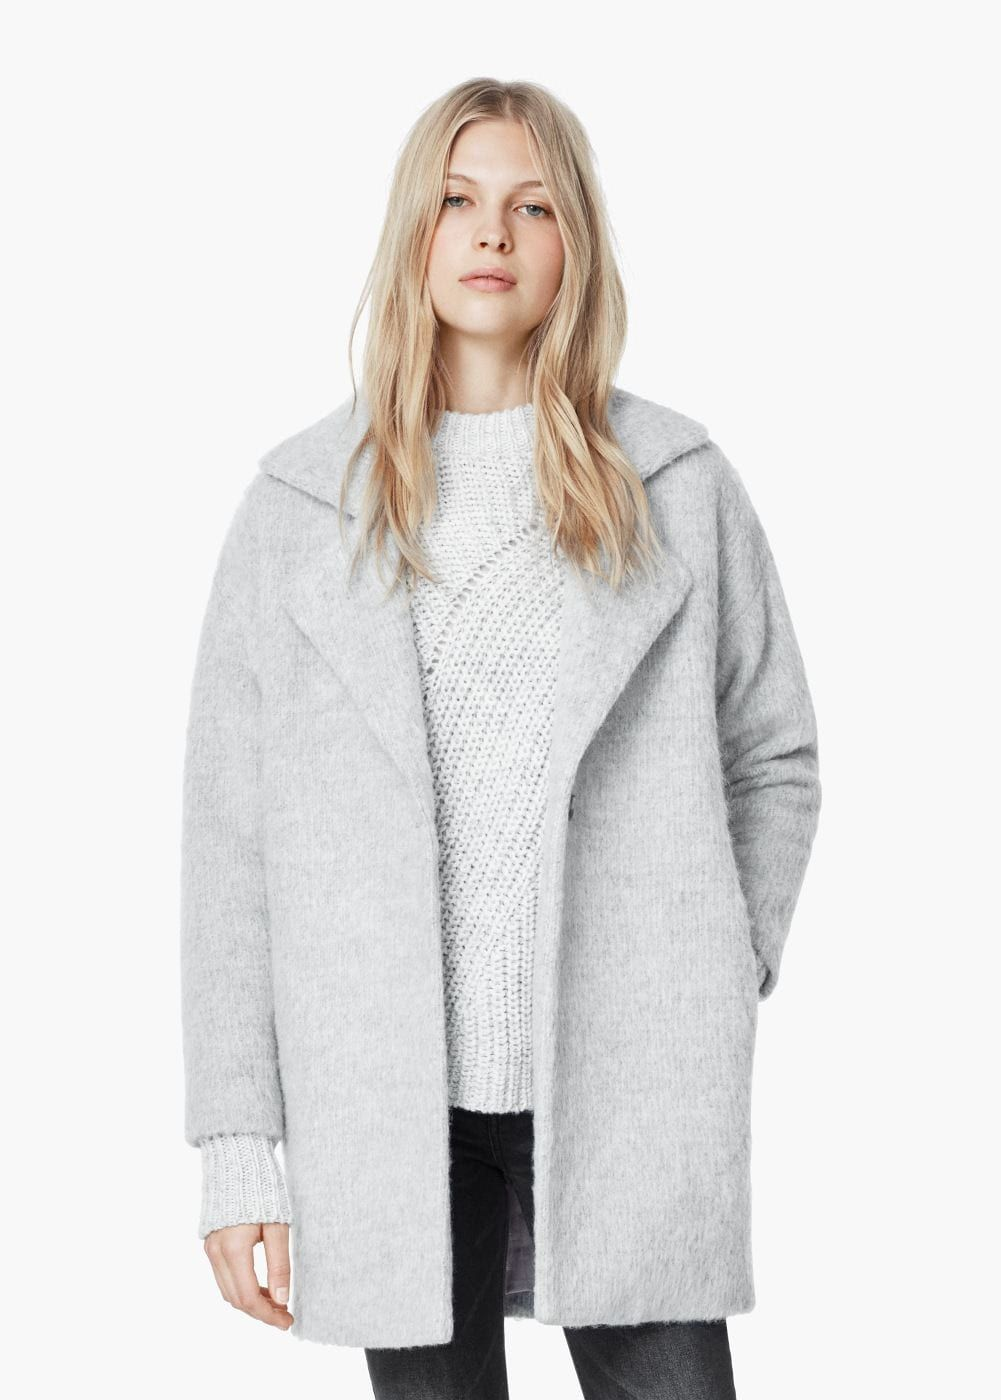 Manteau laine revers - Femme   Pinterest   Shopping 0198736b1cdf